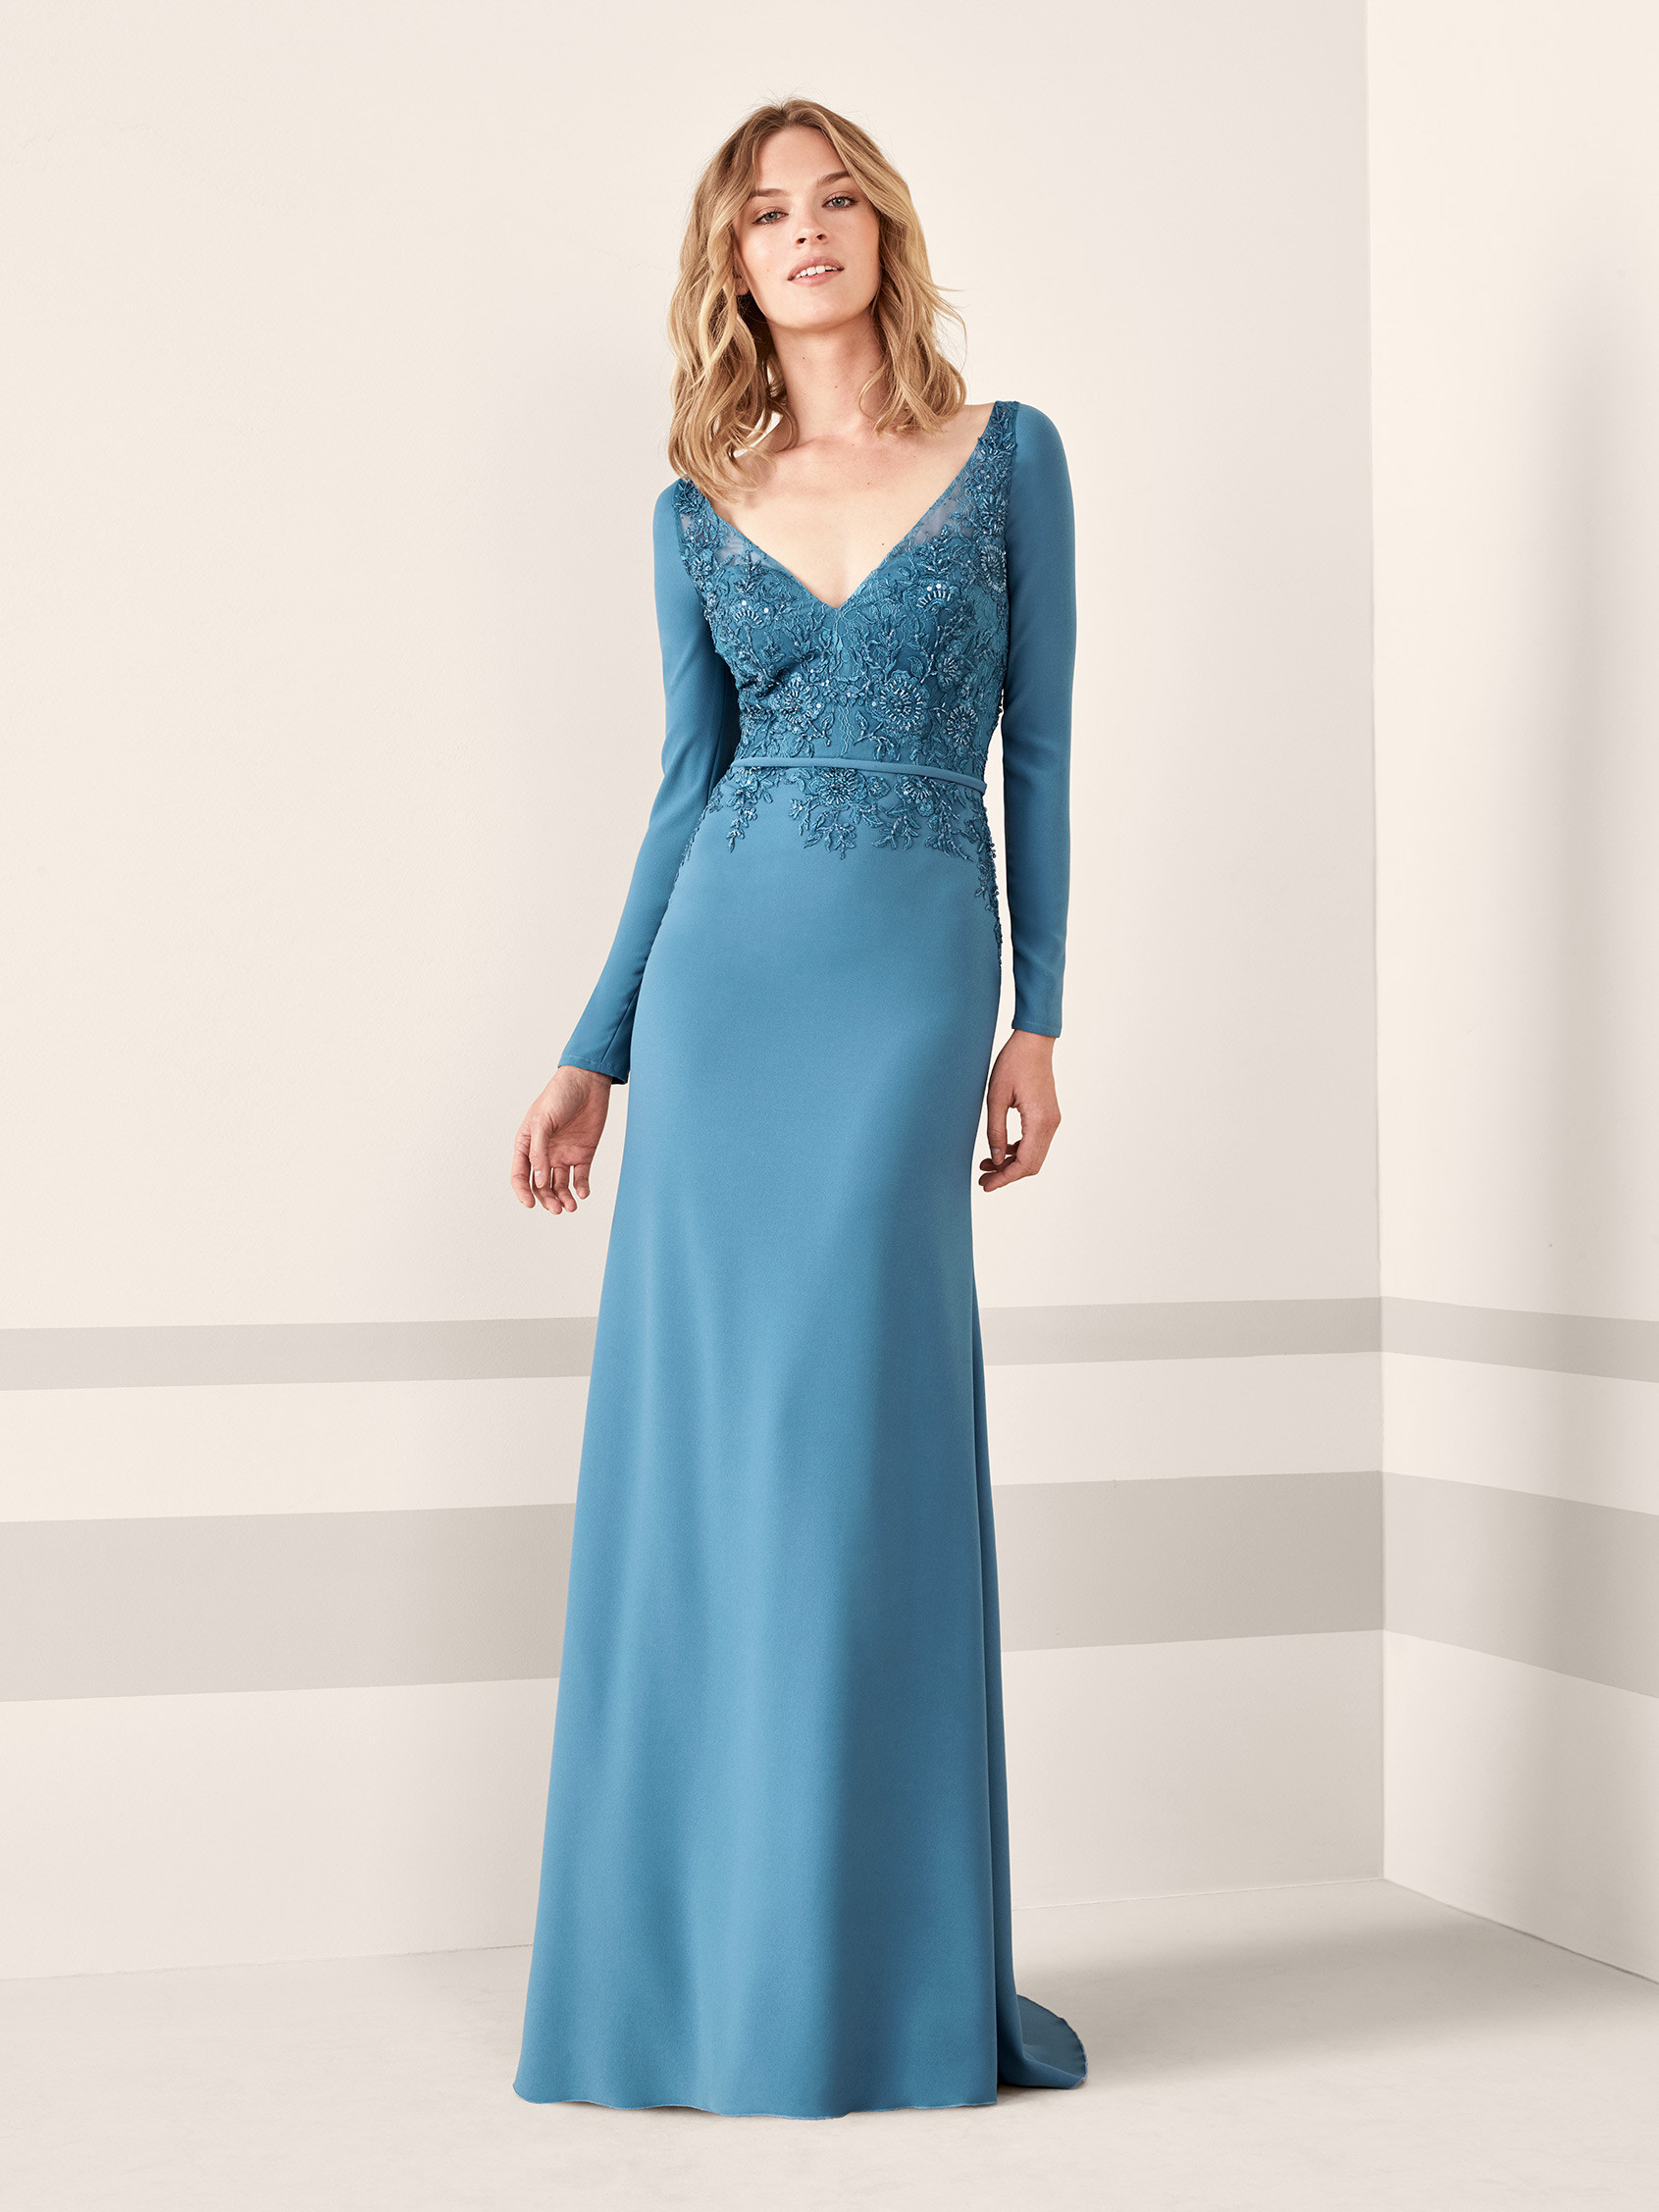 Long-sleeved cocktail dress in crepe and lace JANSI   Pronovias